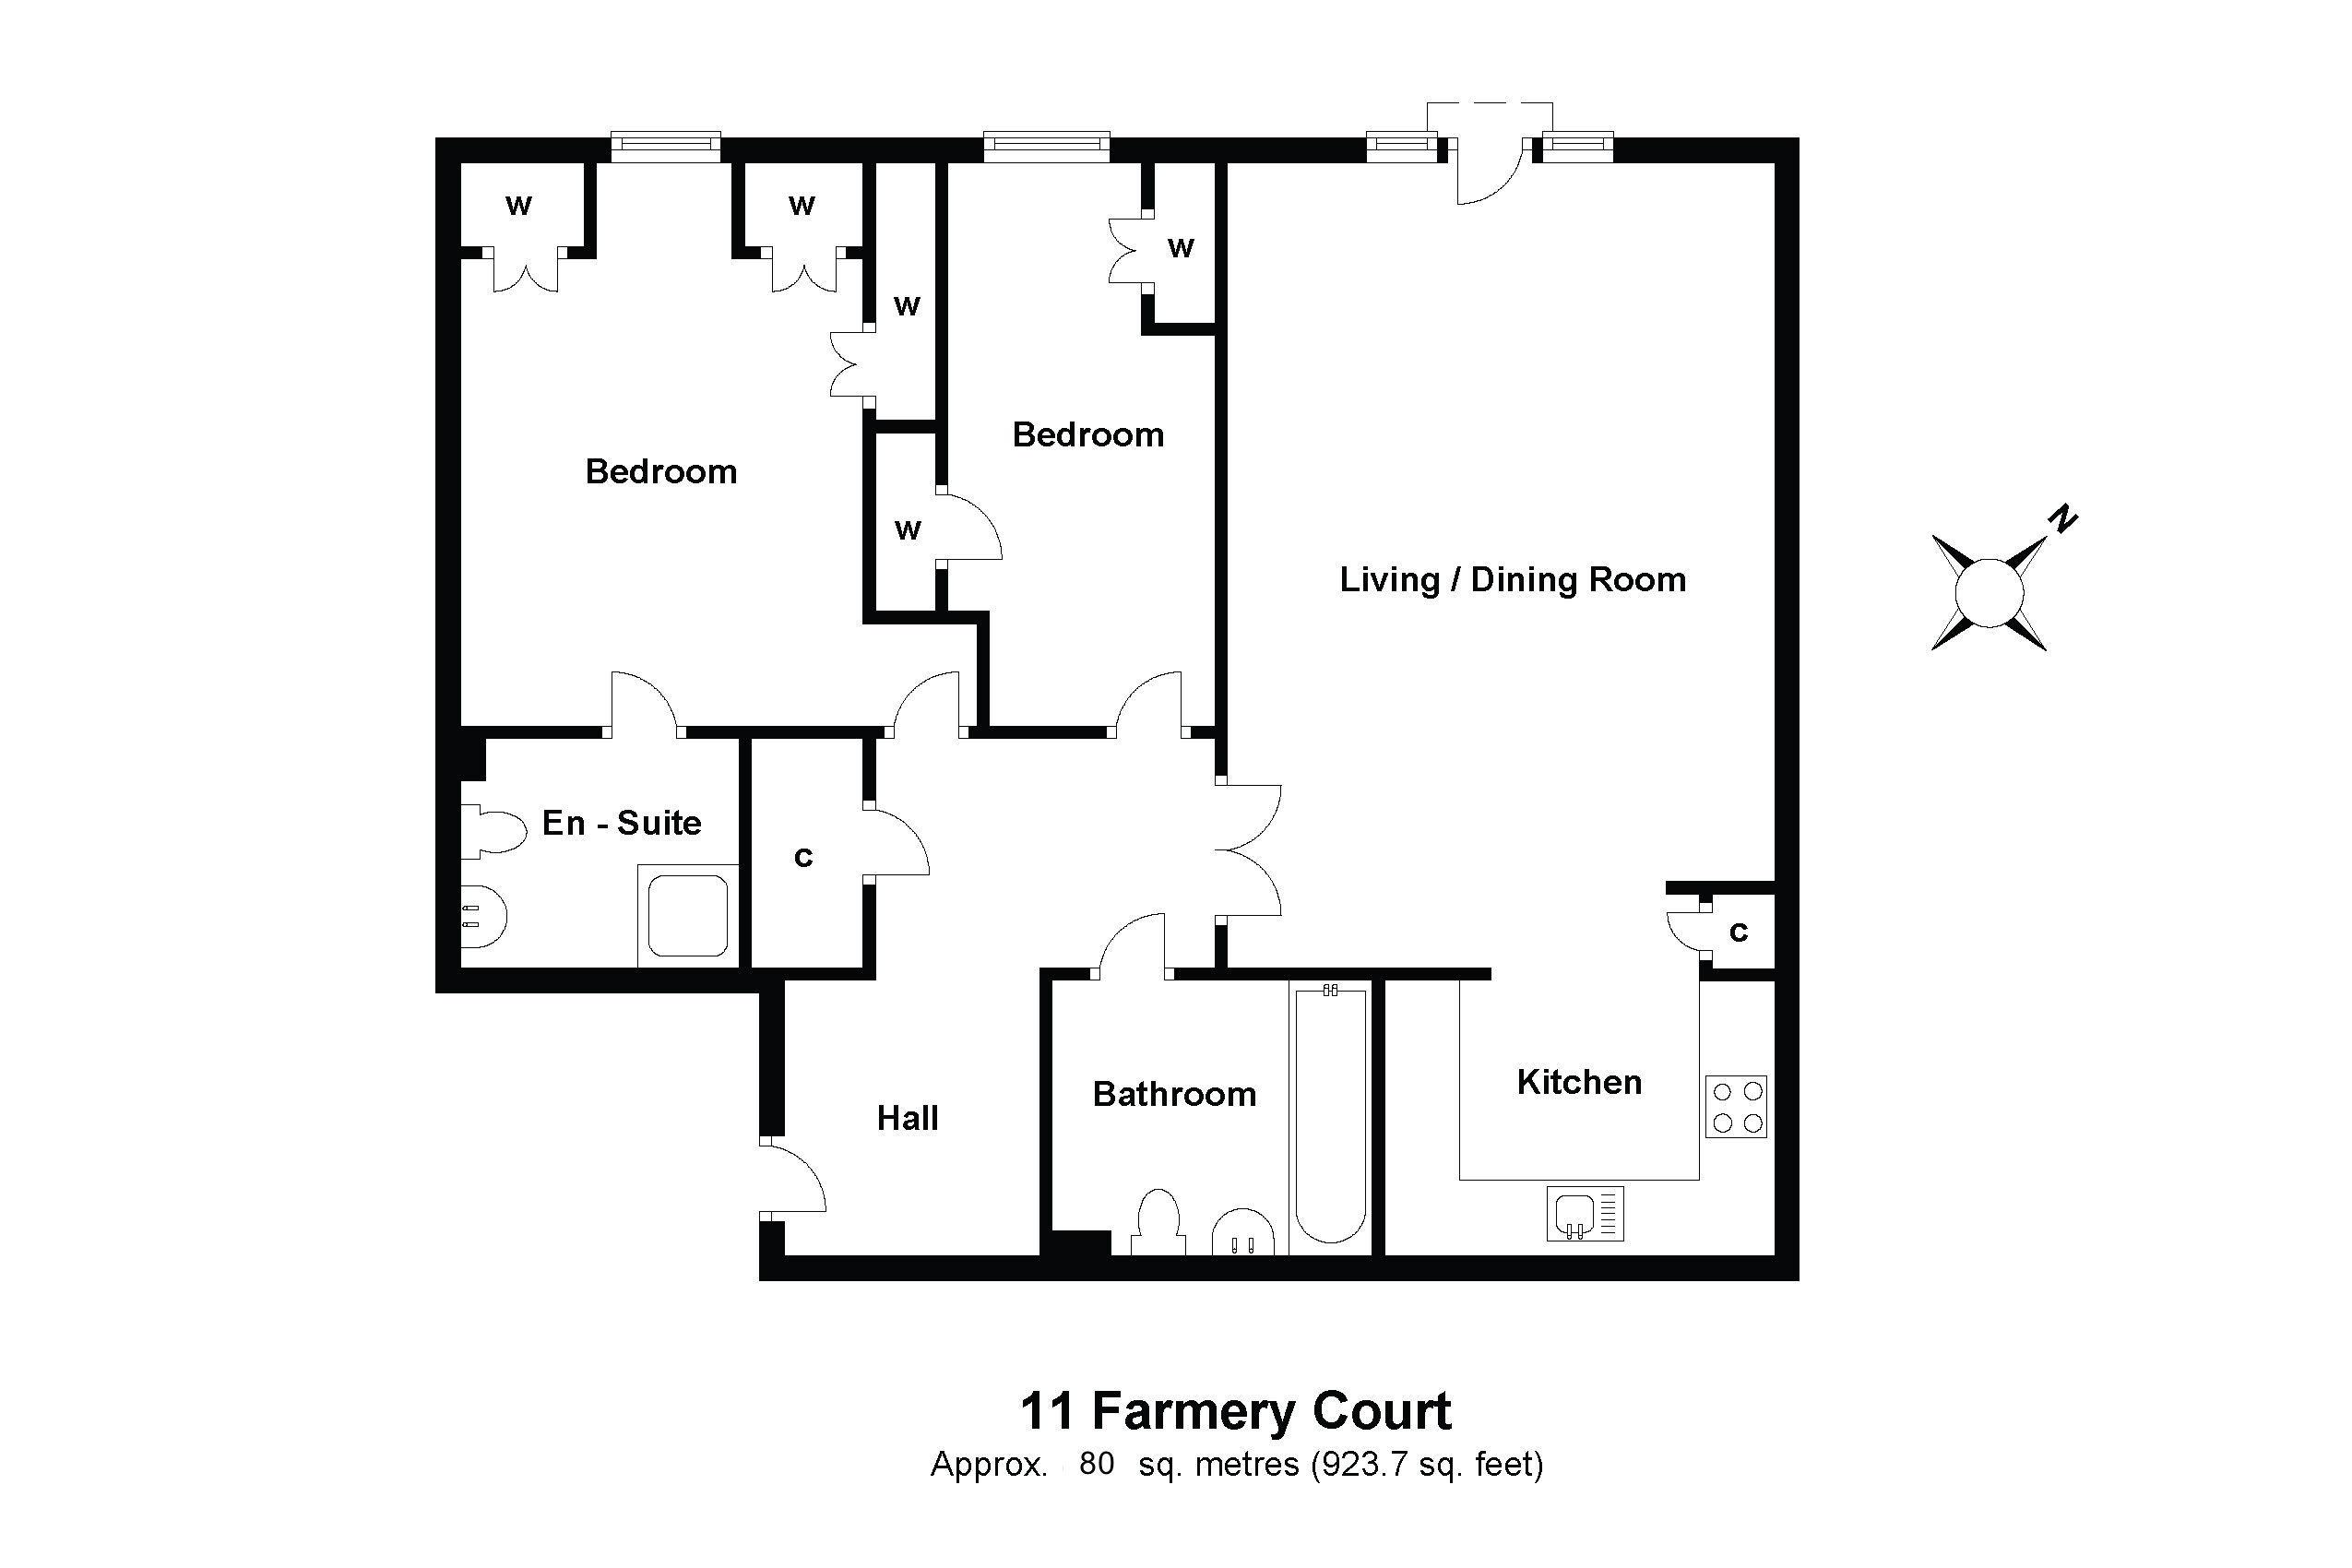 11 Farmery Court Floorplan